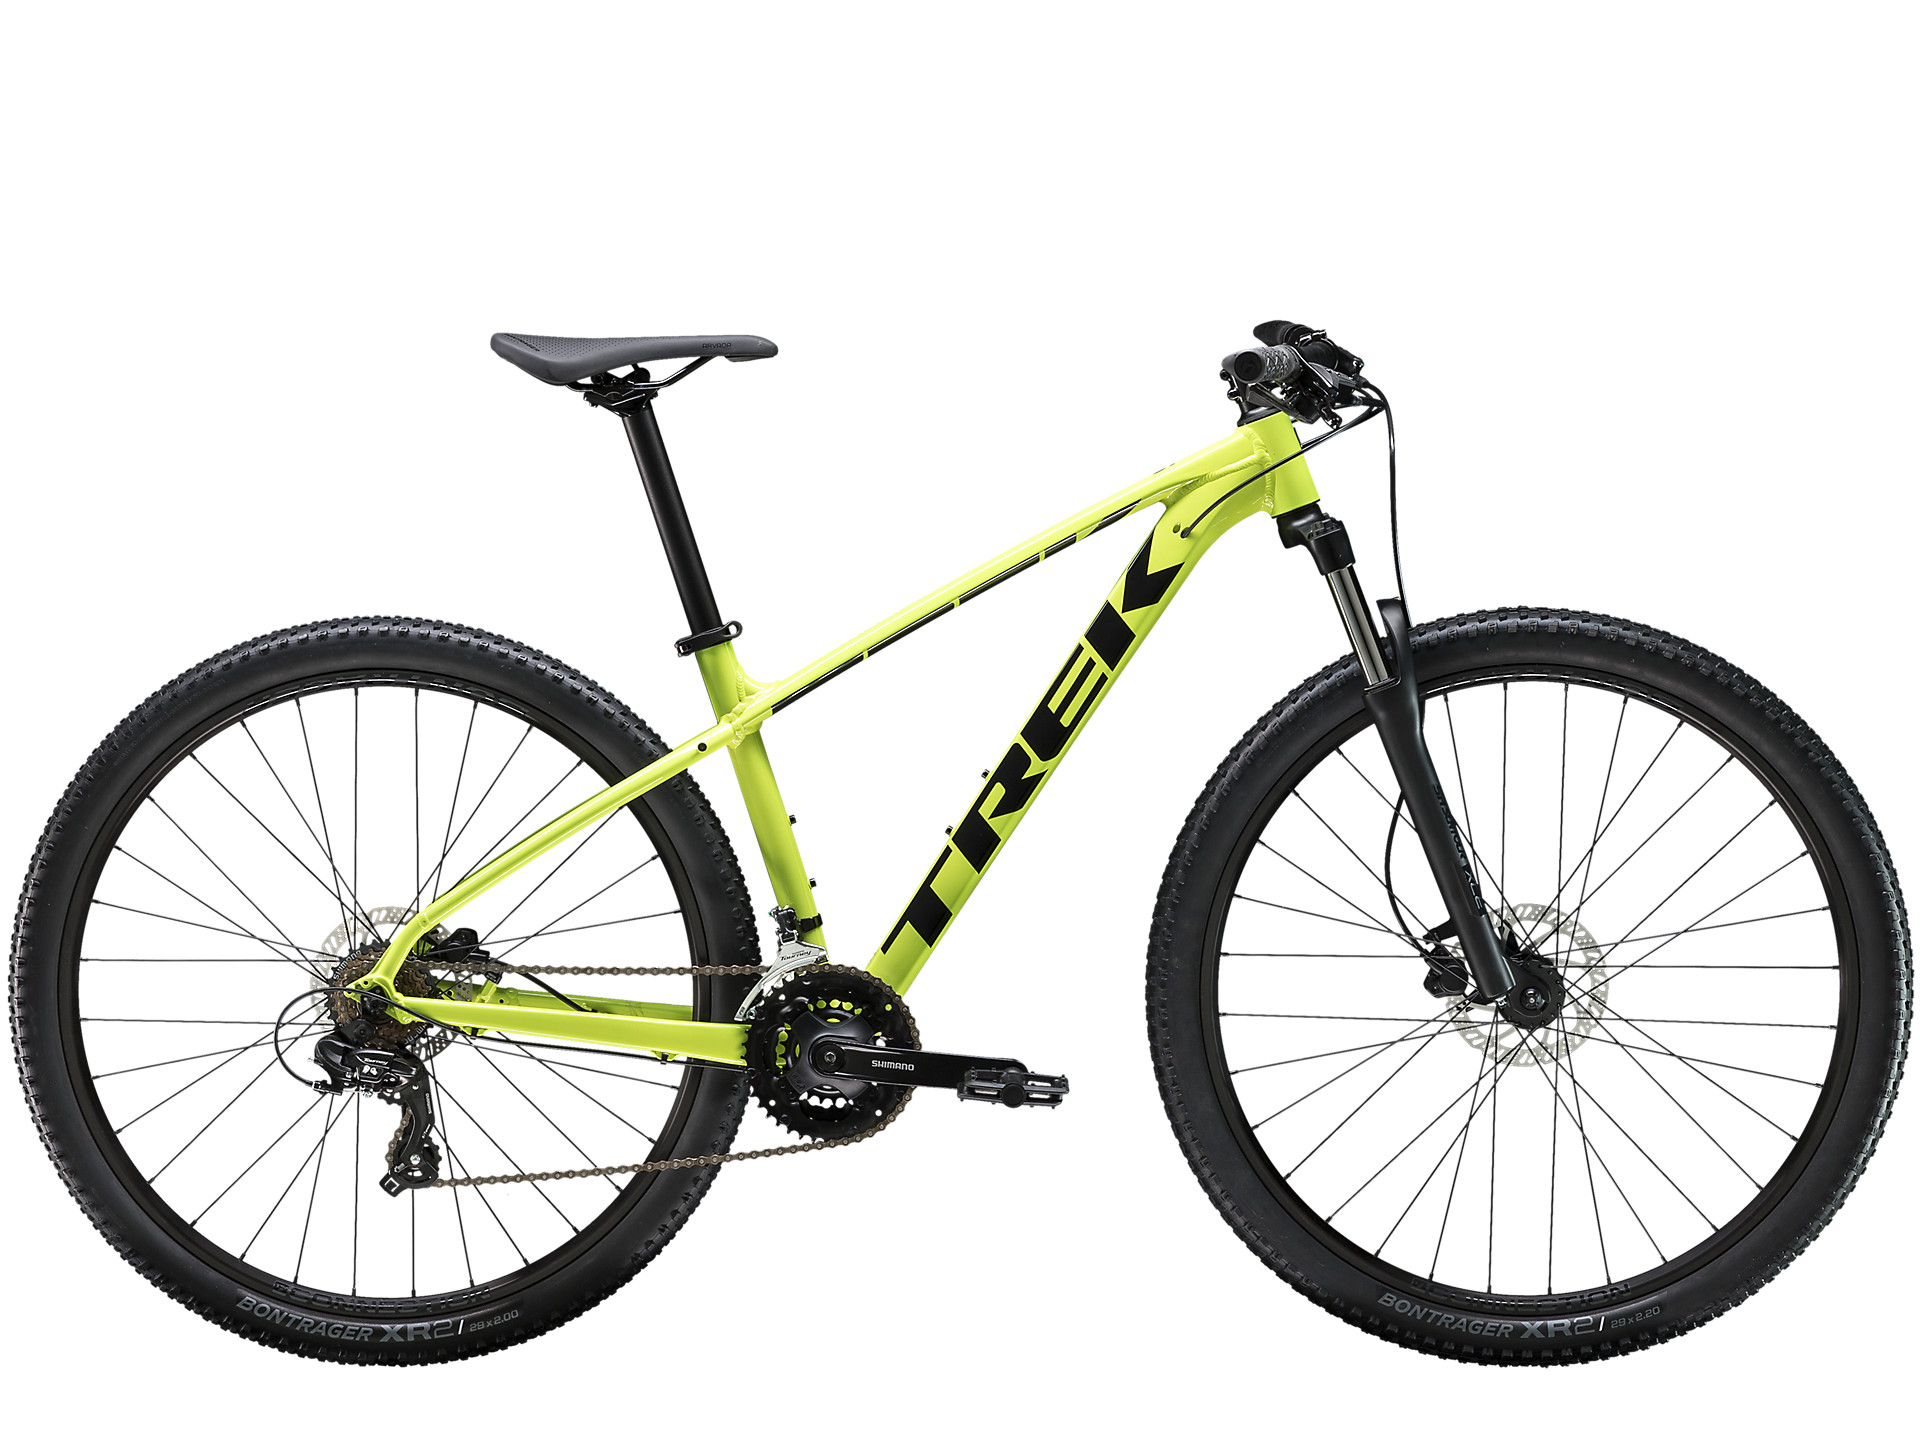 6b8e4755096 Marlin 7 | Trek Bikes (GB)